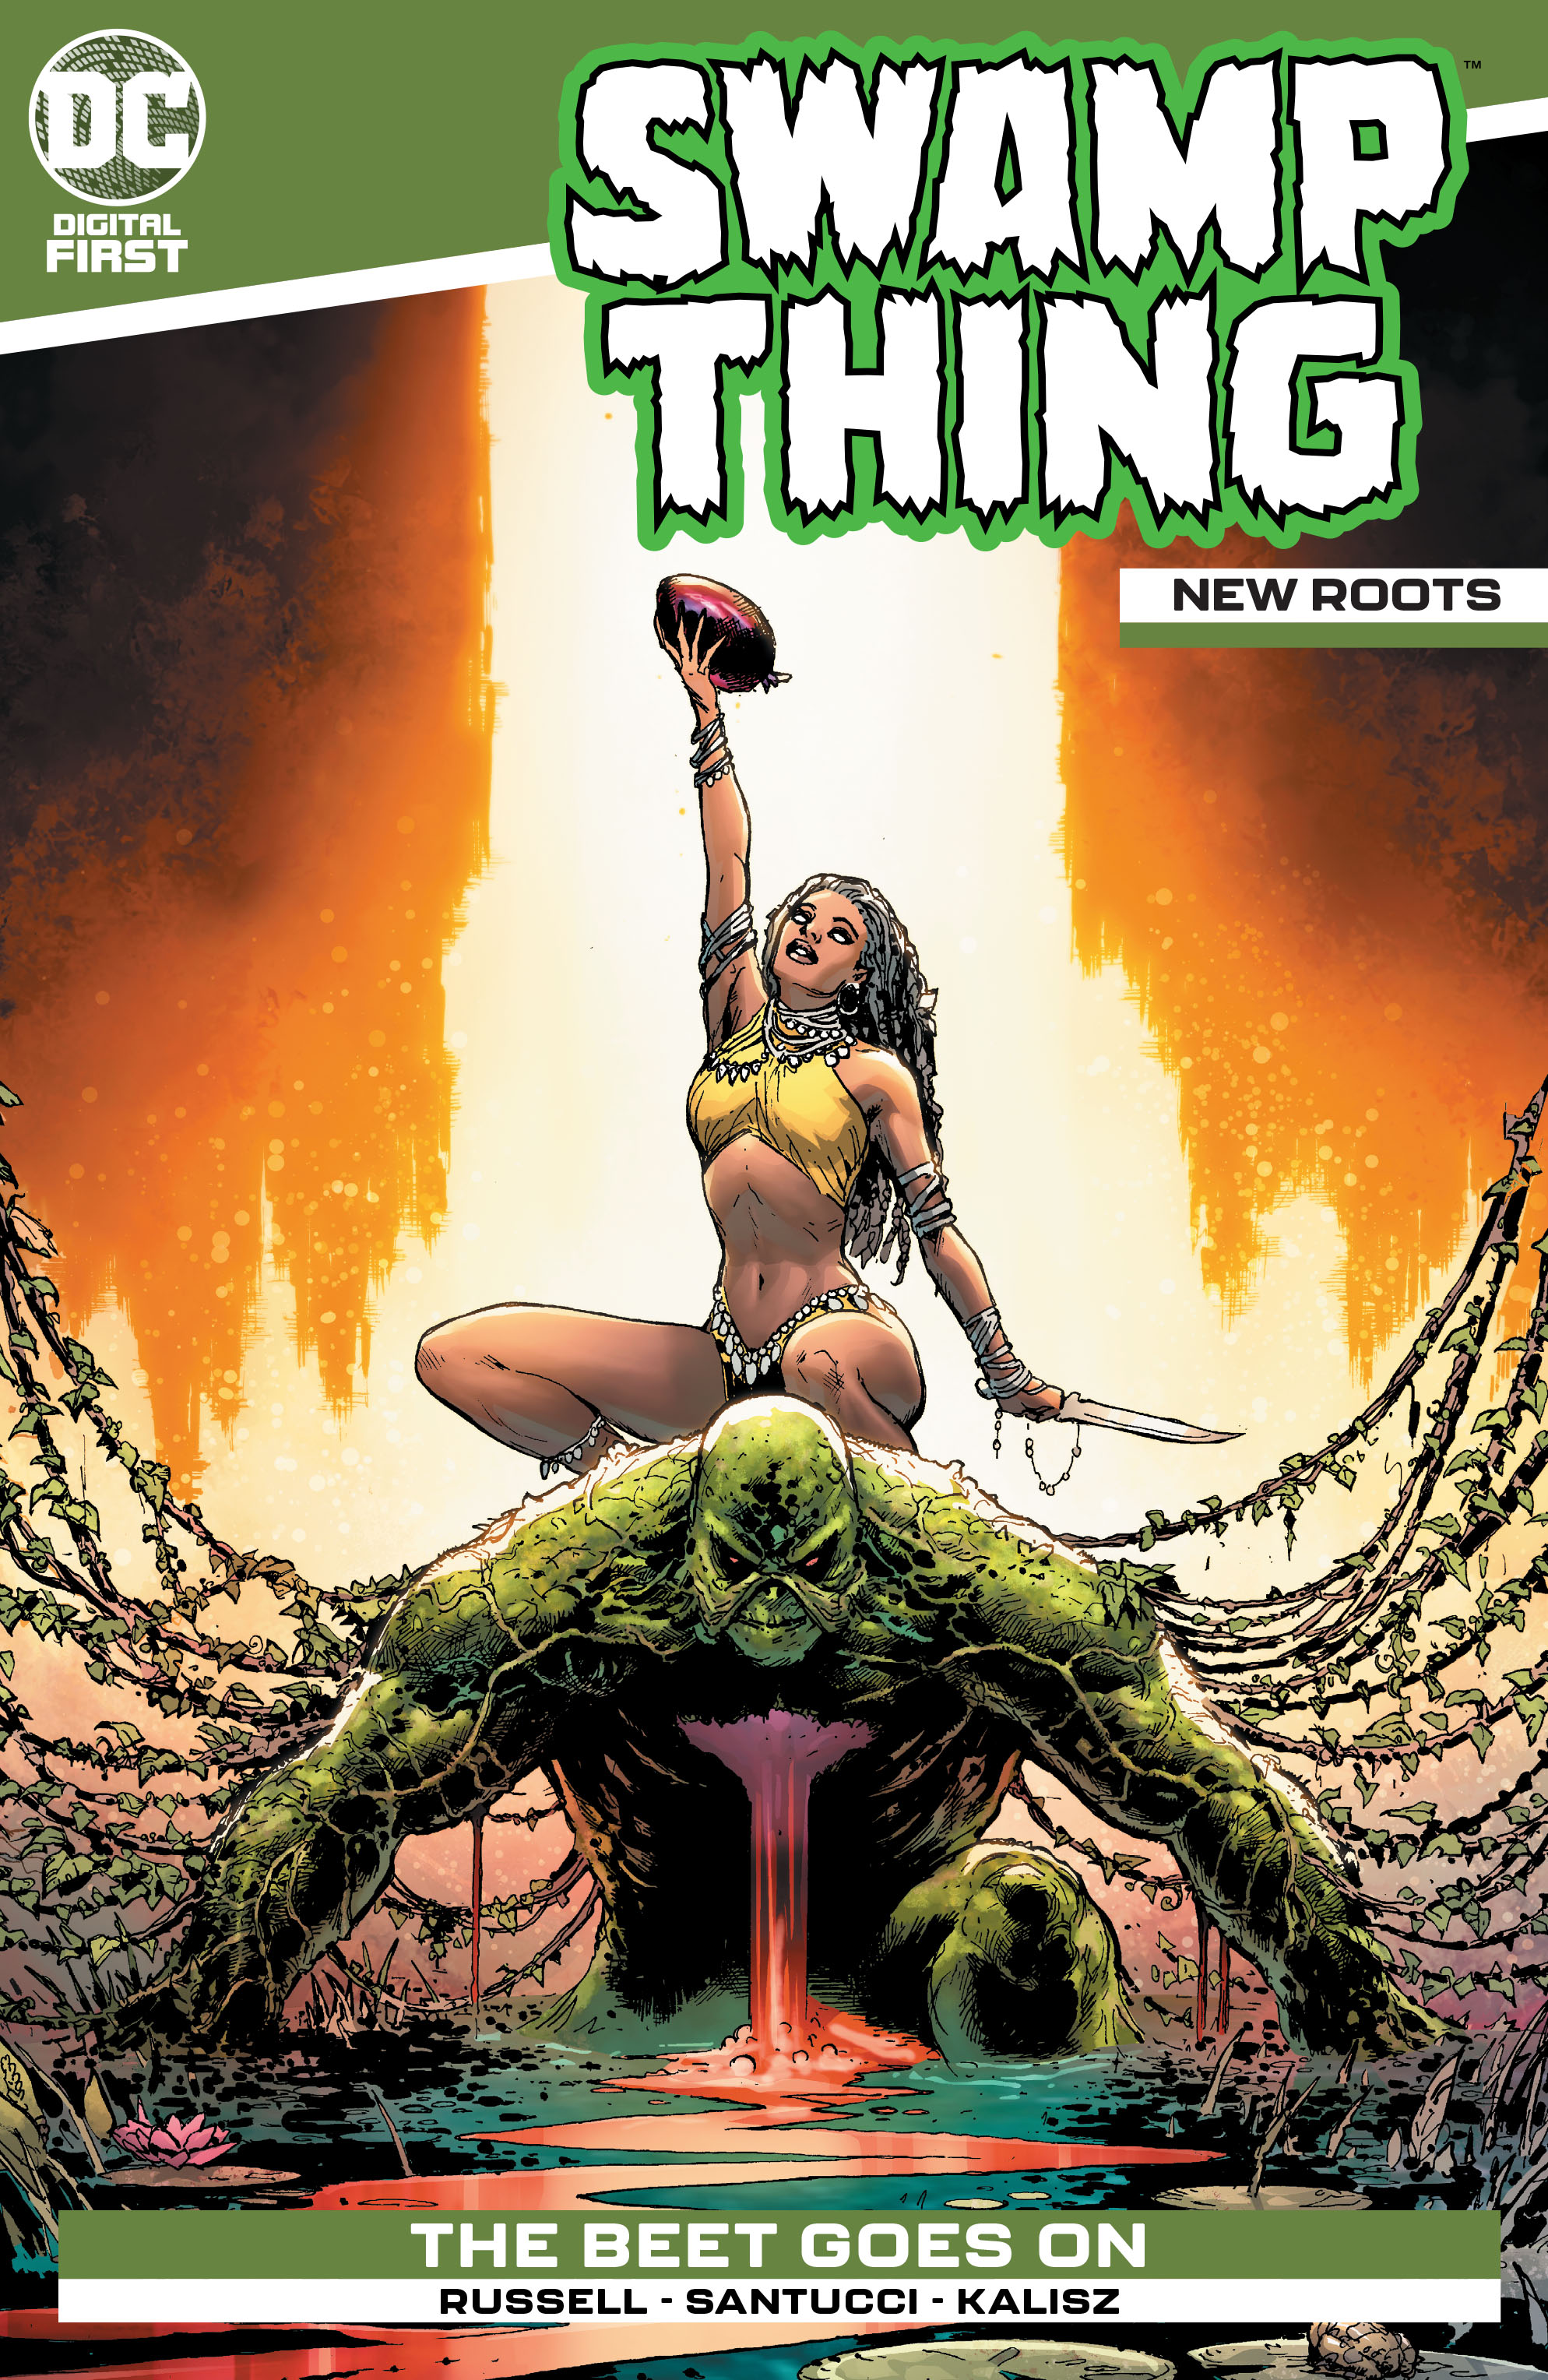 Swamp Thing: New Roots Vol 1 1 (Digital)